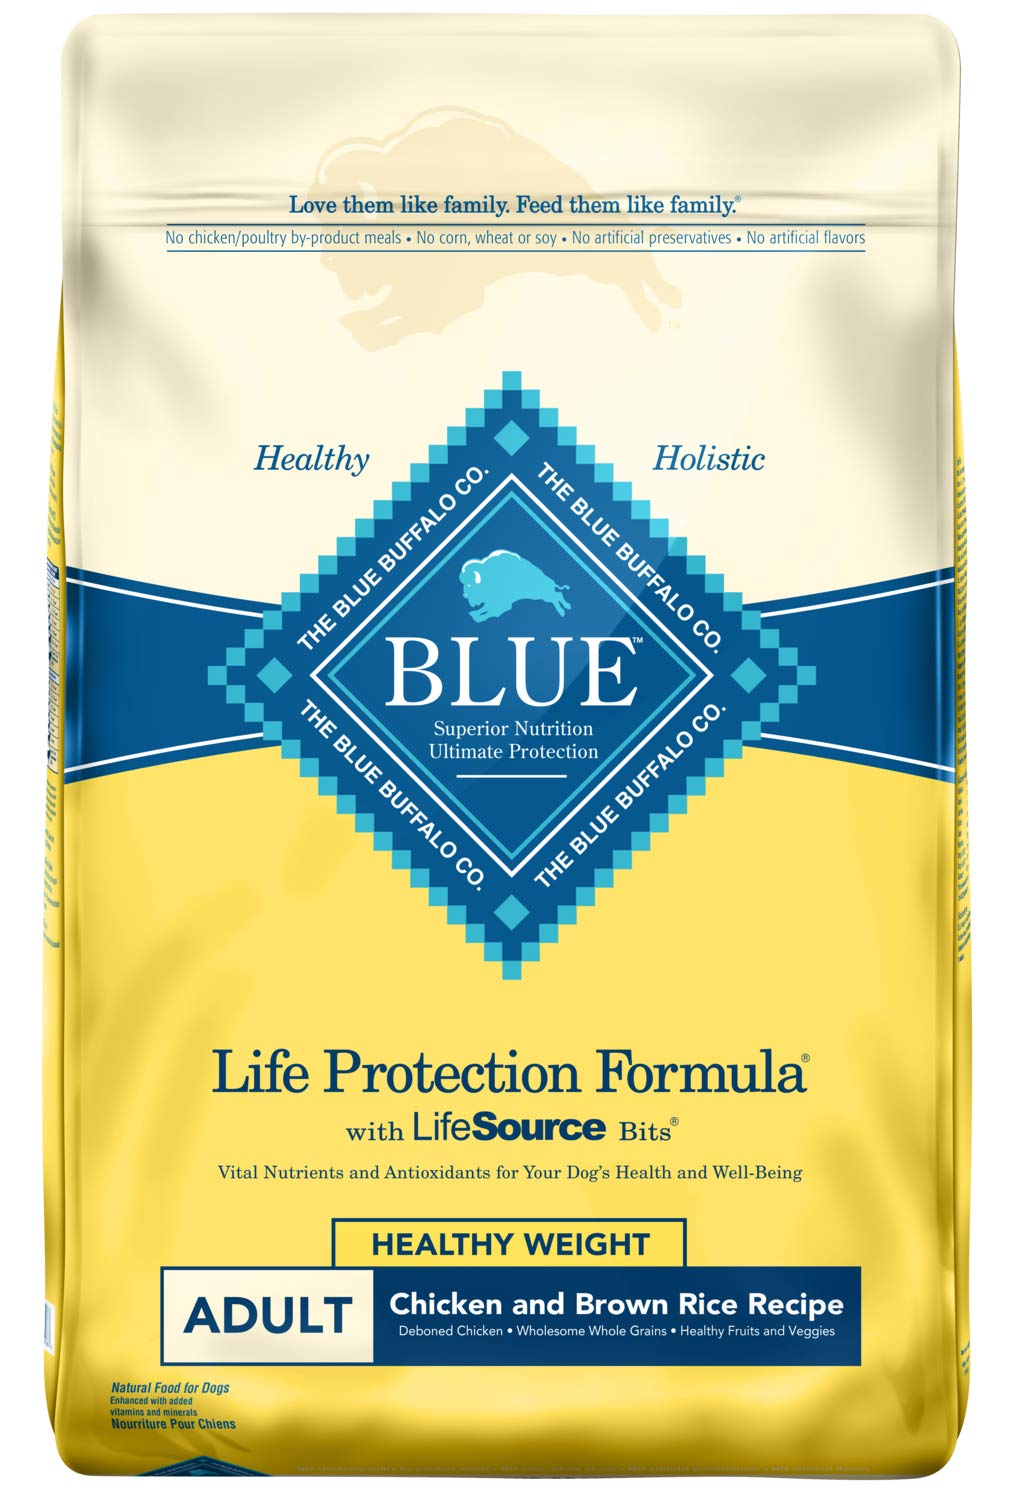 Blue Buffalo Life Protection Formula Healthy Weight Dog Food - Natural Dry Dog Food for Adult Dogs - Chicken and Brown Rice - 30 lb. Bag by Blue Buffalo